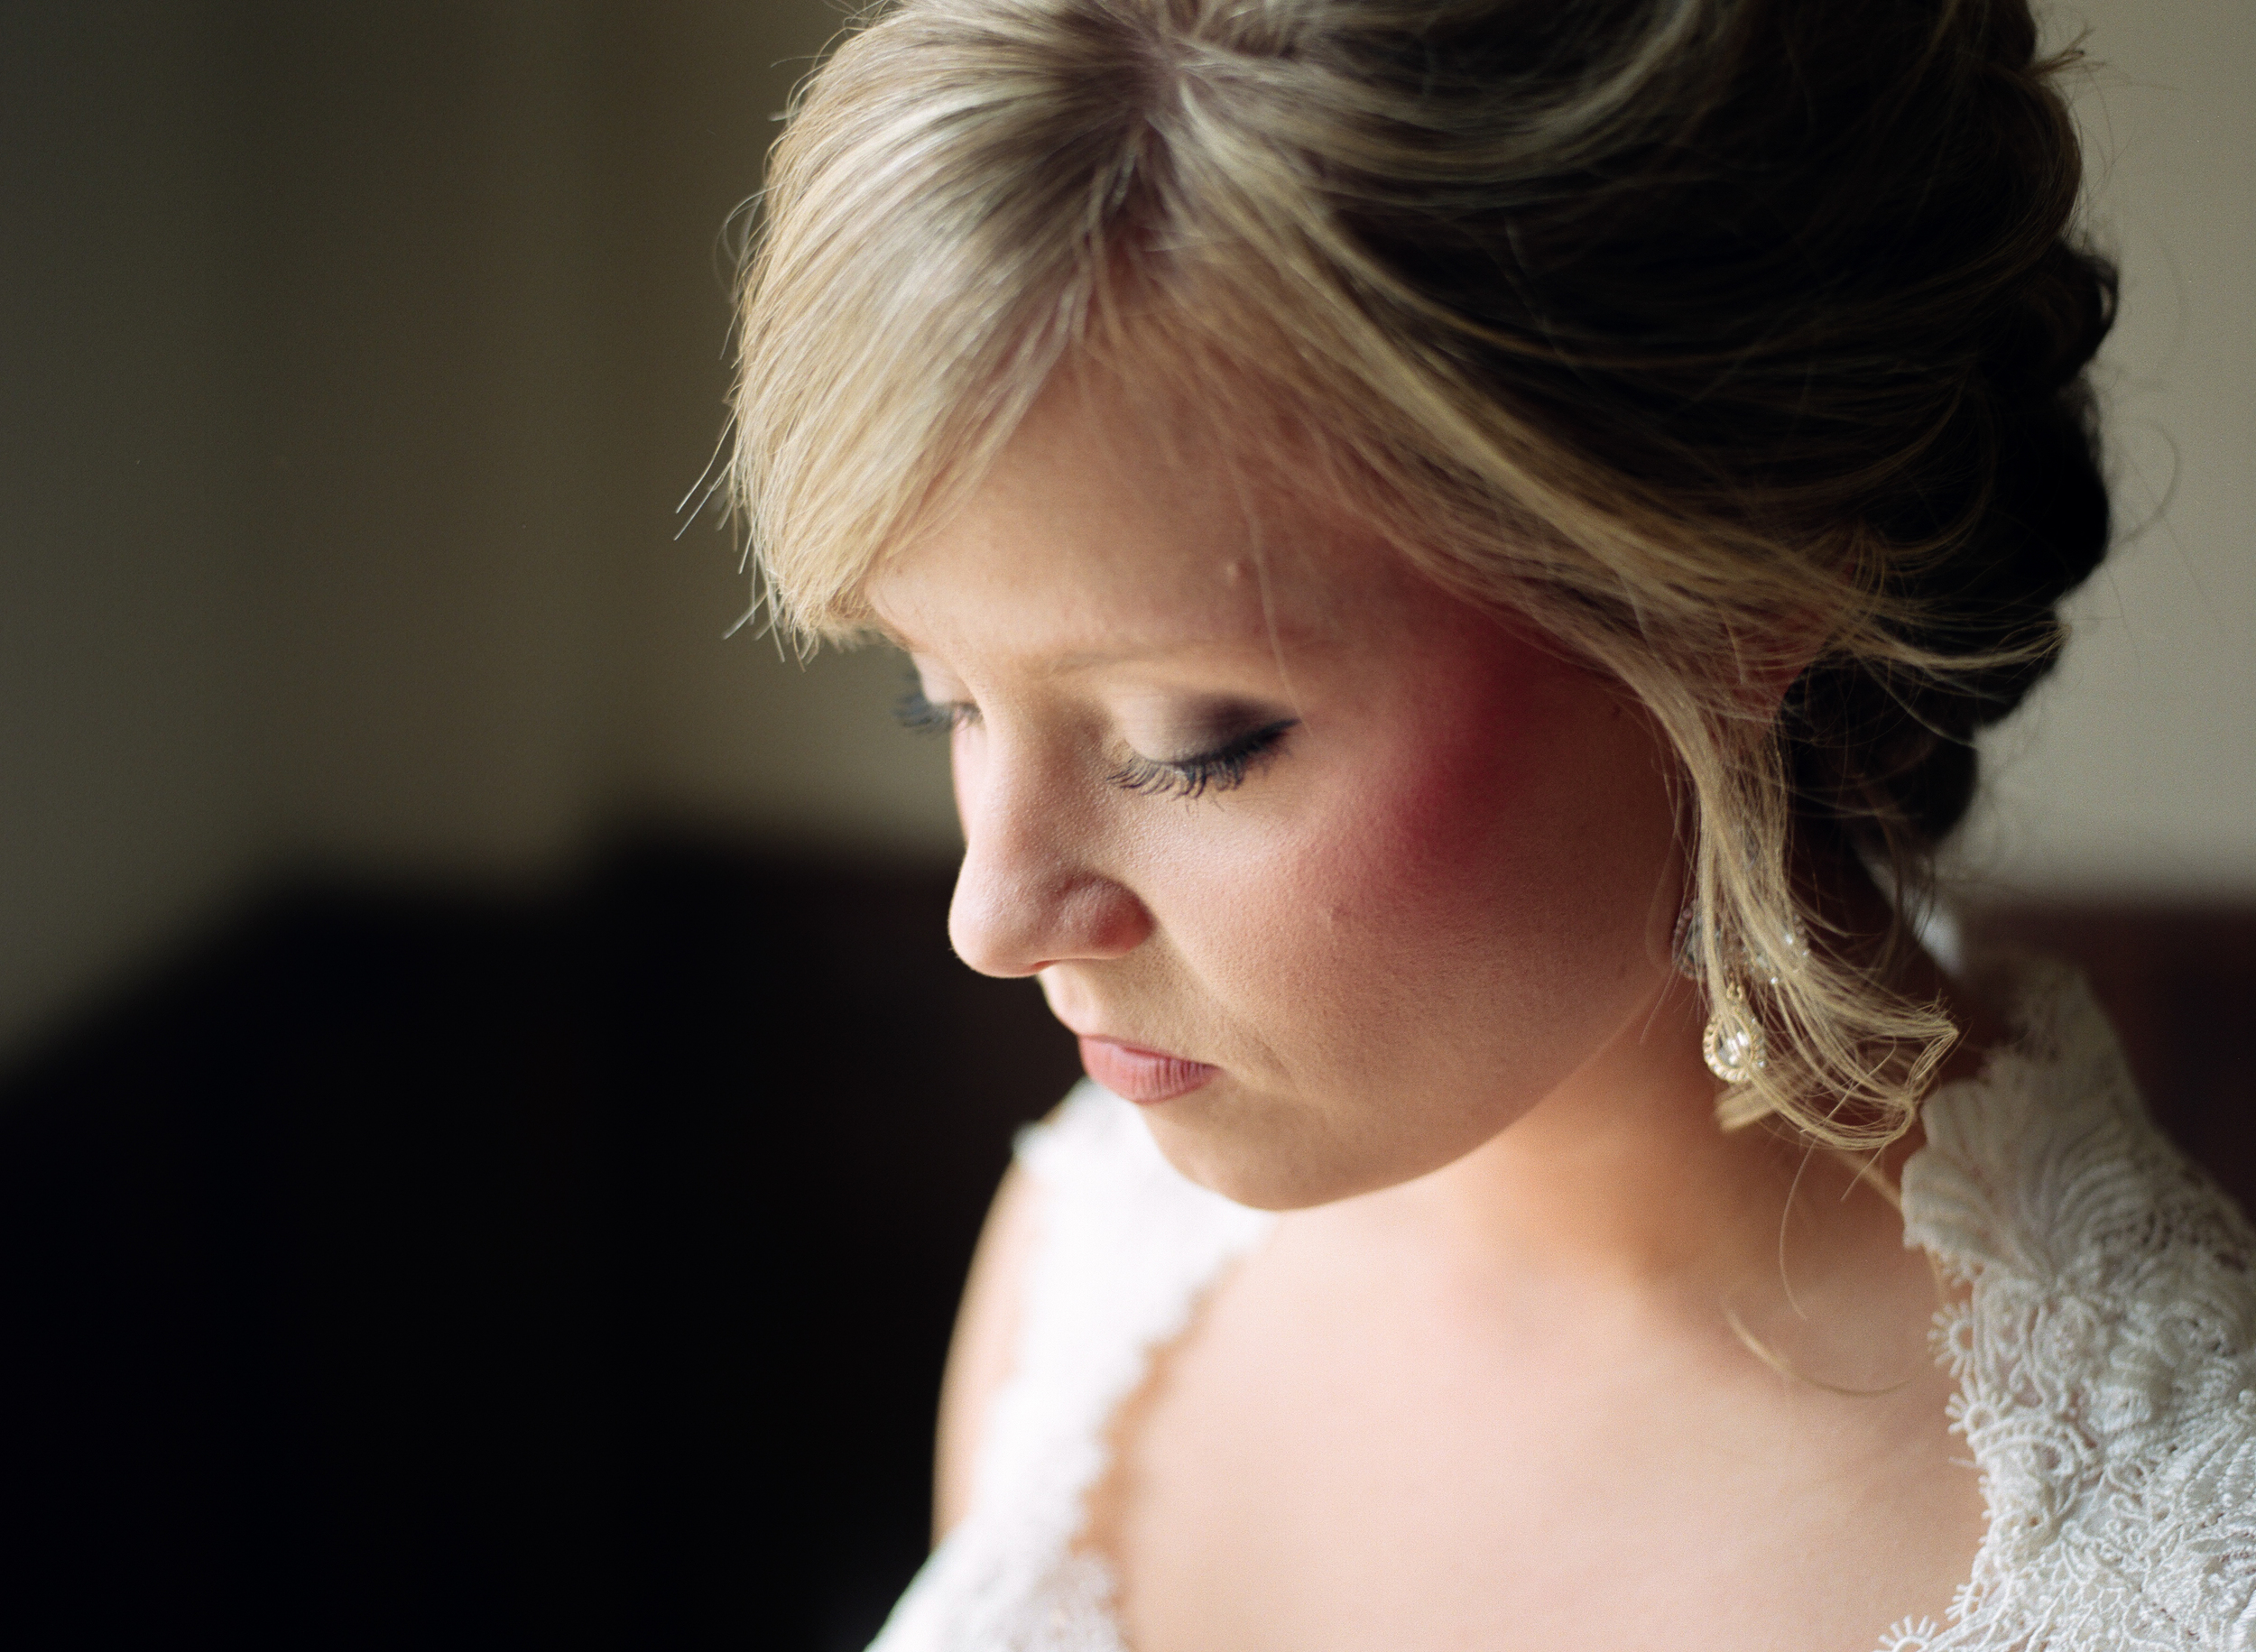 White_Water_Ridge_Wetumpka_Alabama_Wedding_Photography-10.jpg